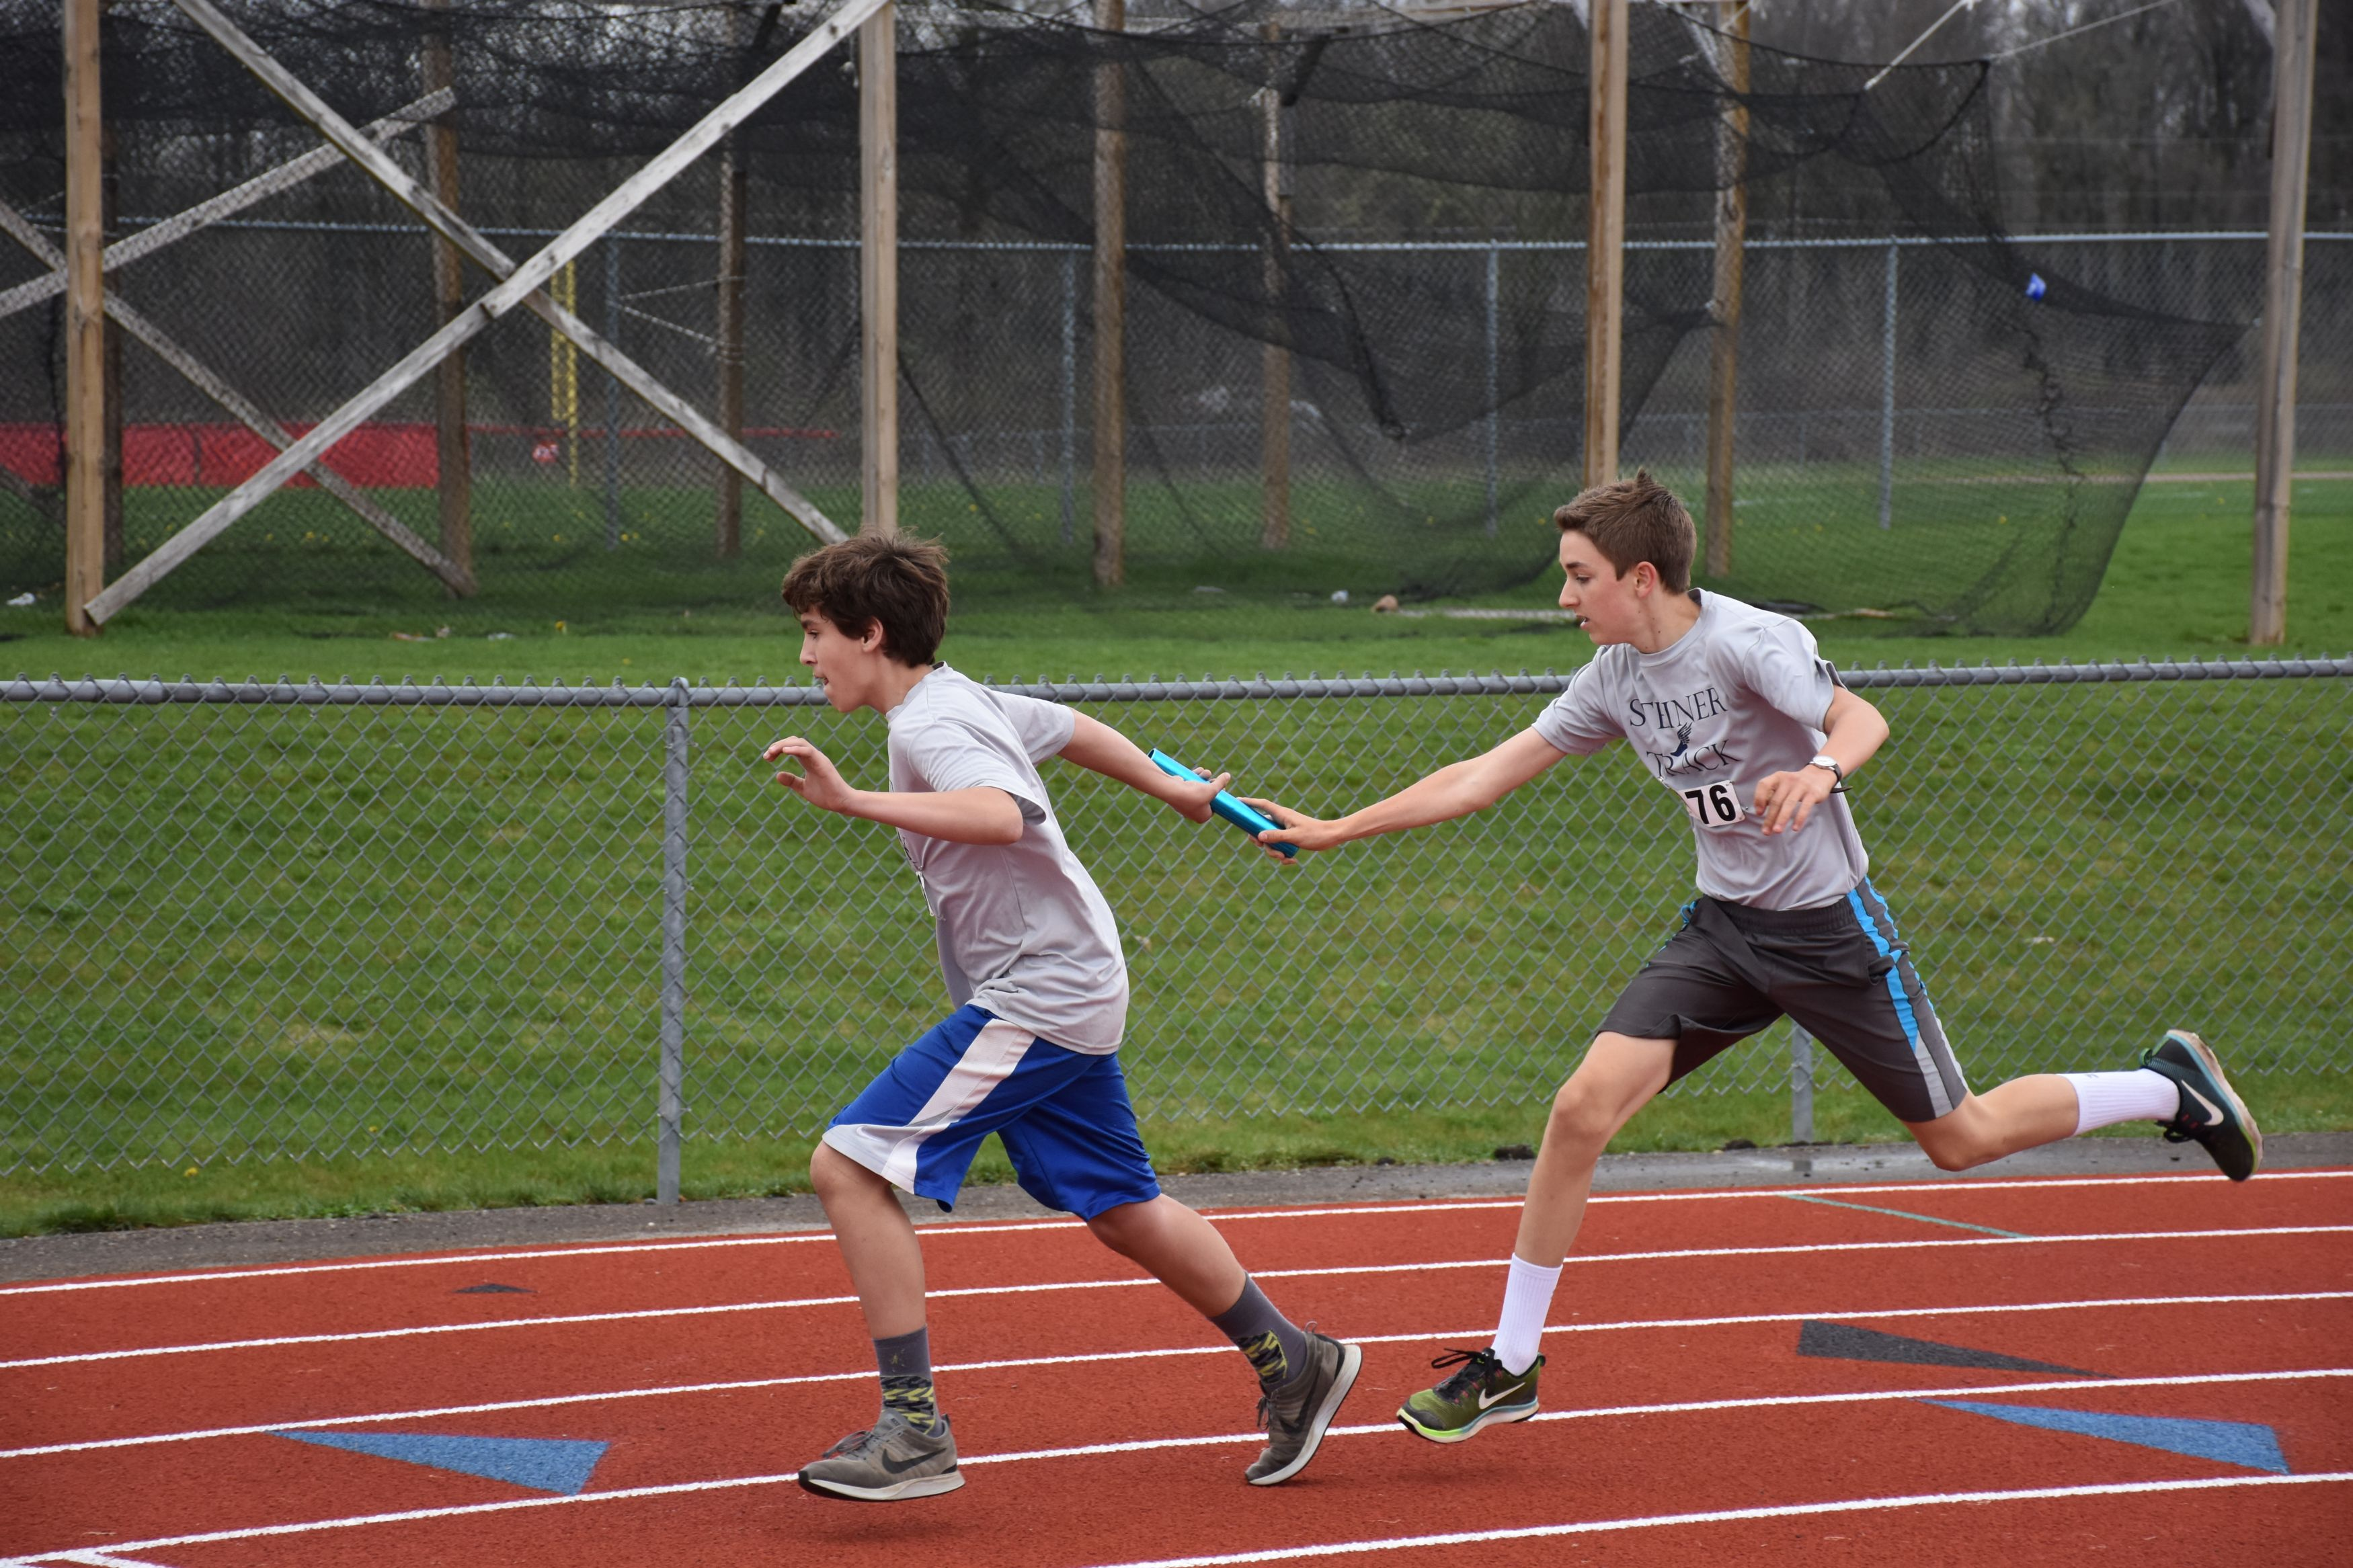 Two Boys Running Relay Race